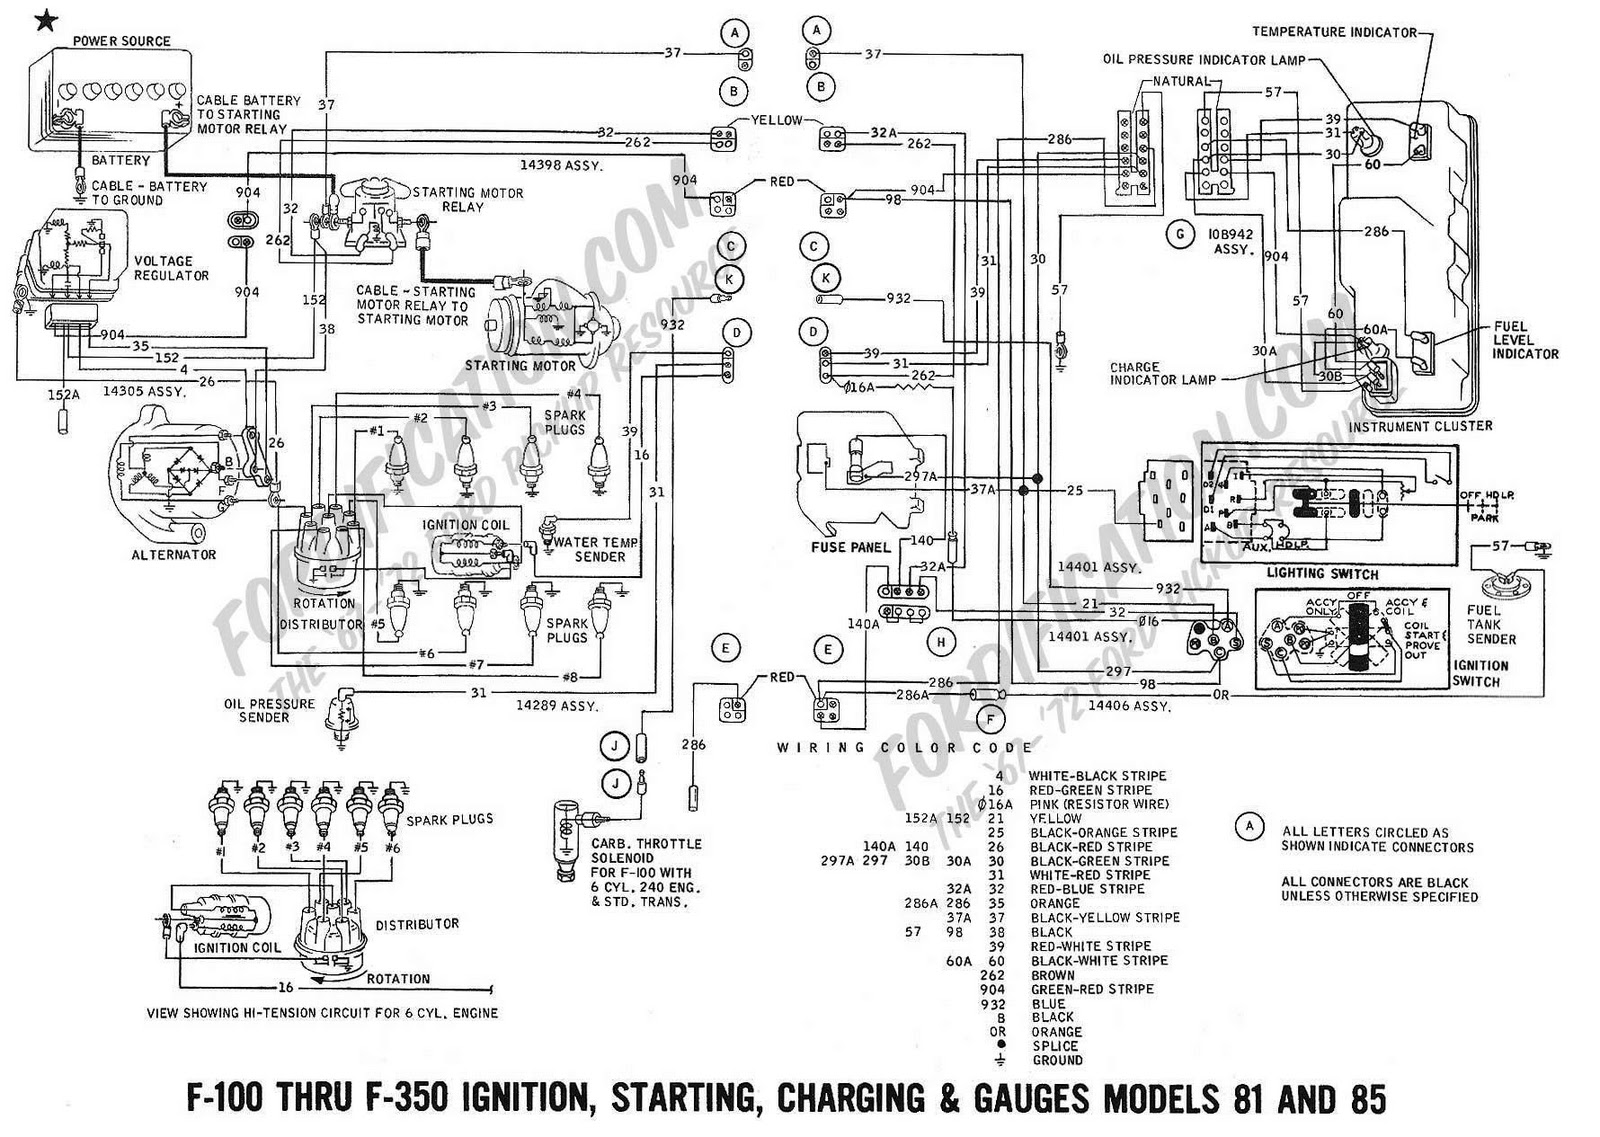 1969+Ford+F100 F350+Ignition%252C+Starting%252C+Charging%252C+And+Gauges+Wiring+Diagram 1965 ford f100 wiring diagram 1965 ford f100 wiring schematic  at soozxer.org